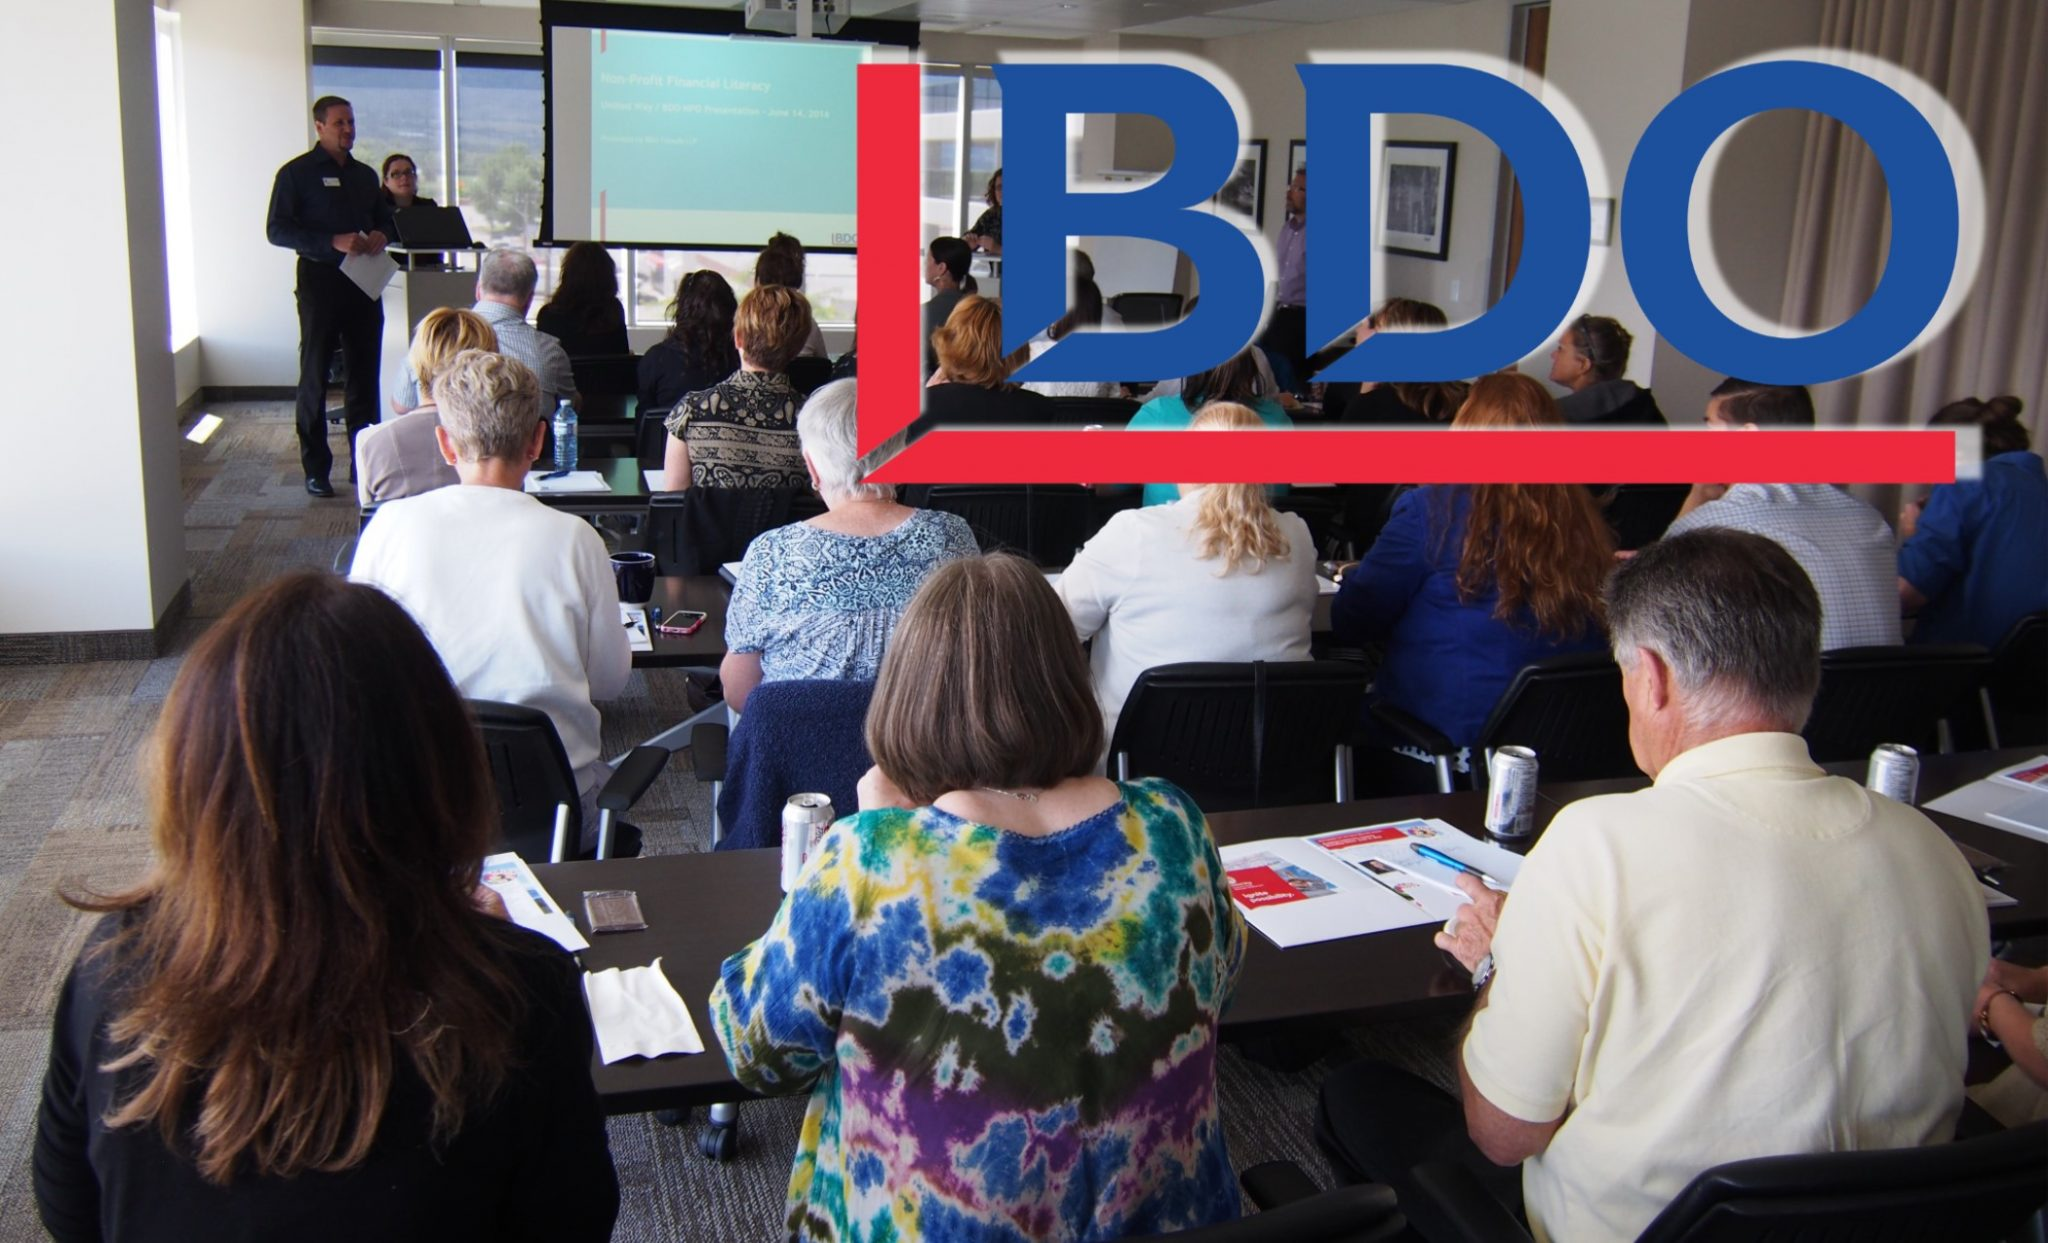 The BDO logo superimposed over an image of a group of people watching and taking notes on a presentation.